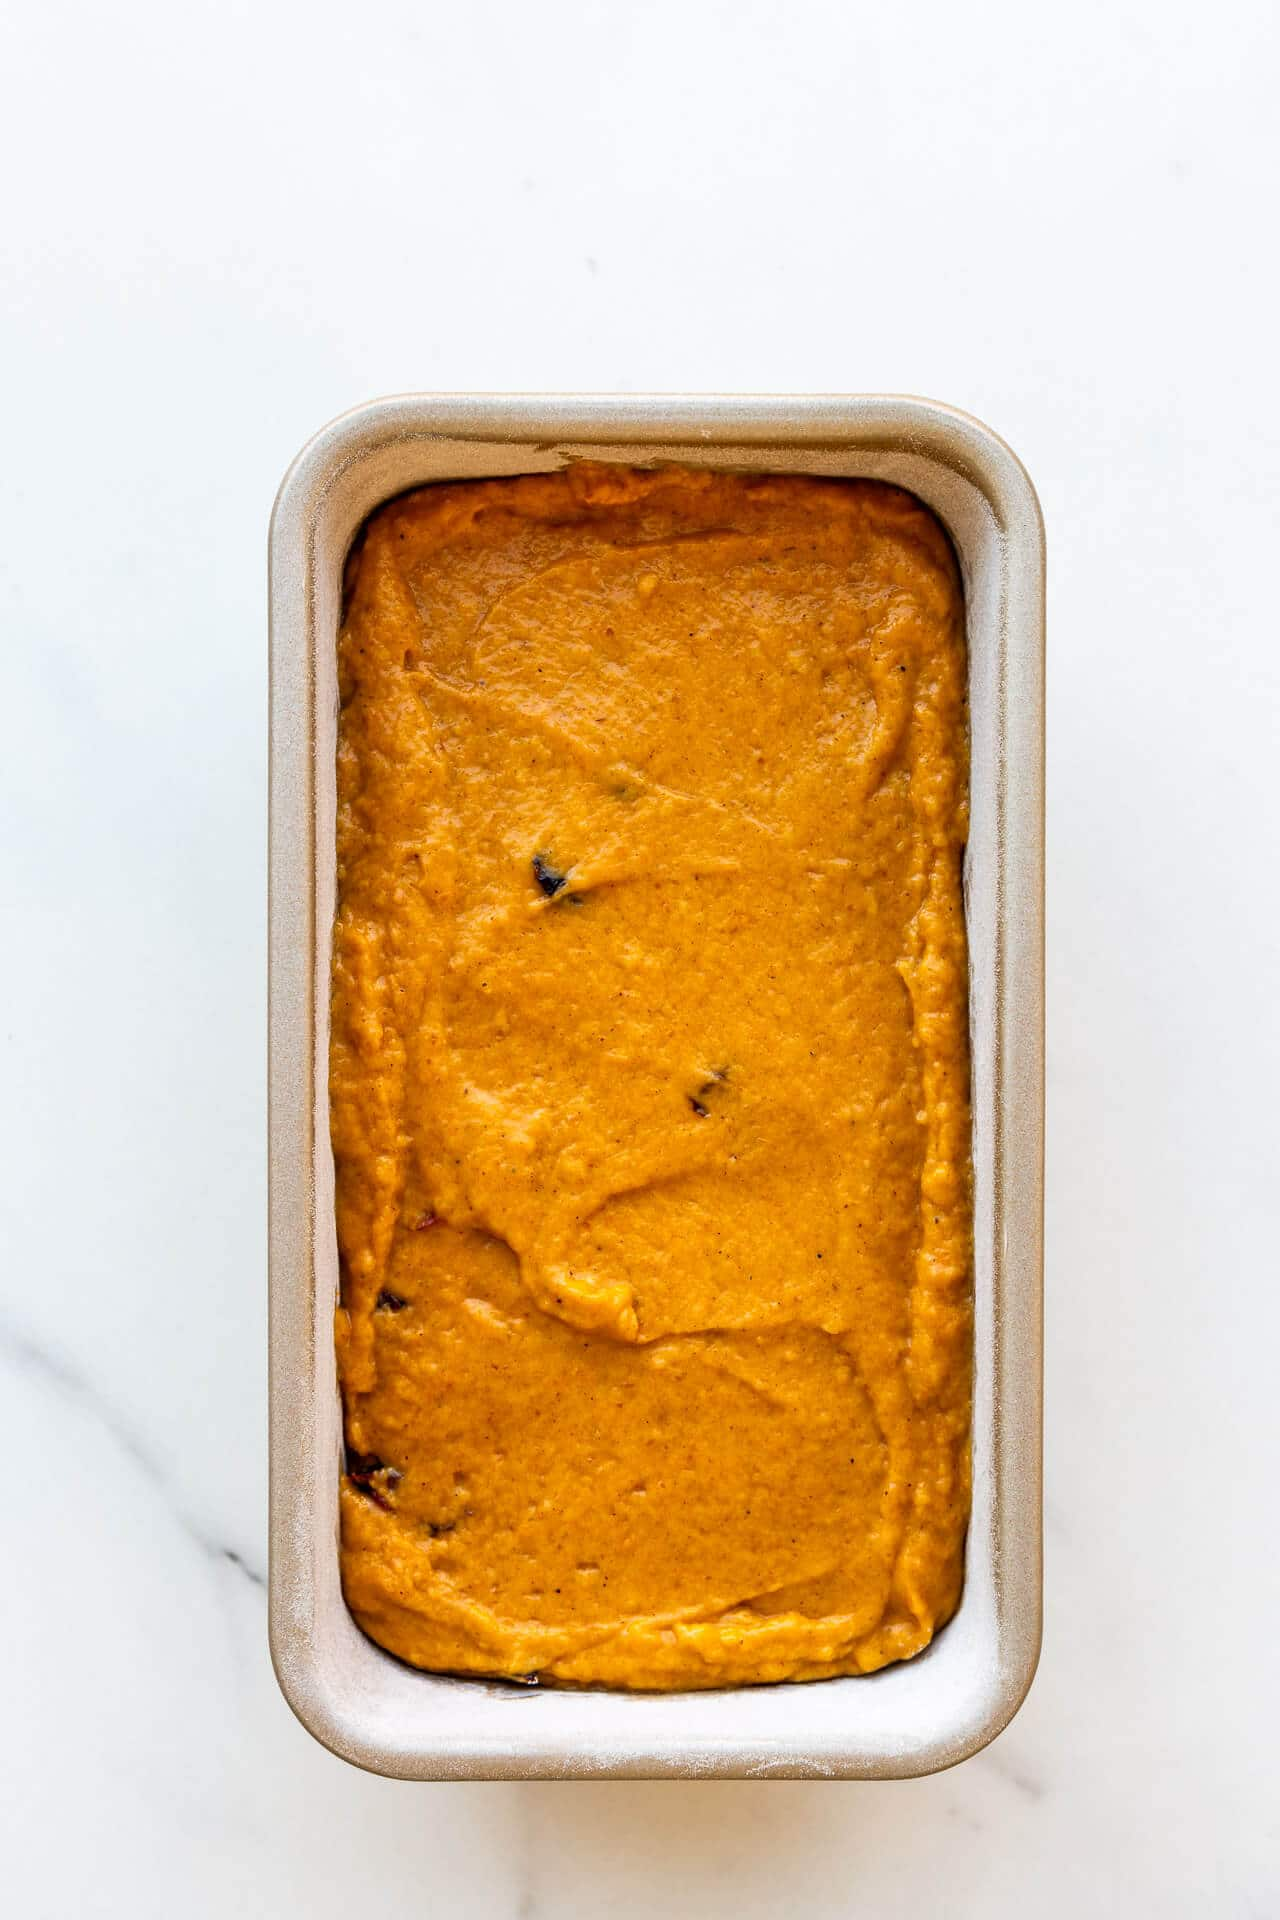 Pumpkin cranberry bread in a loaf pan before baking